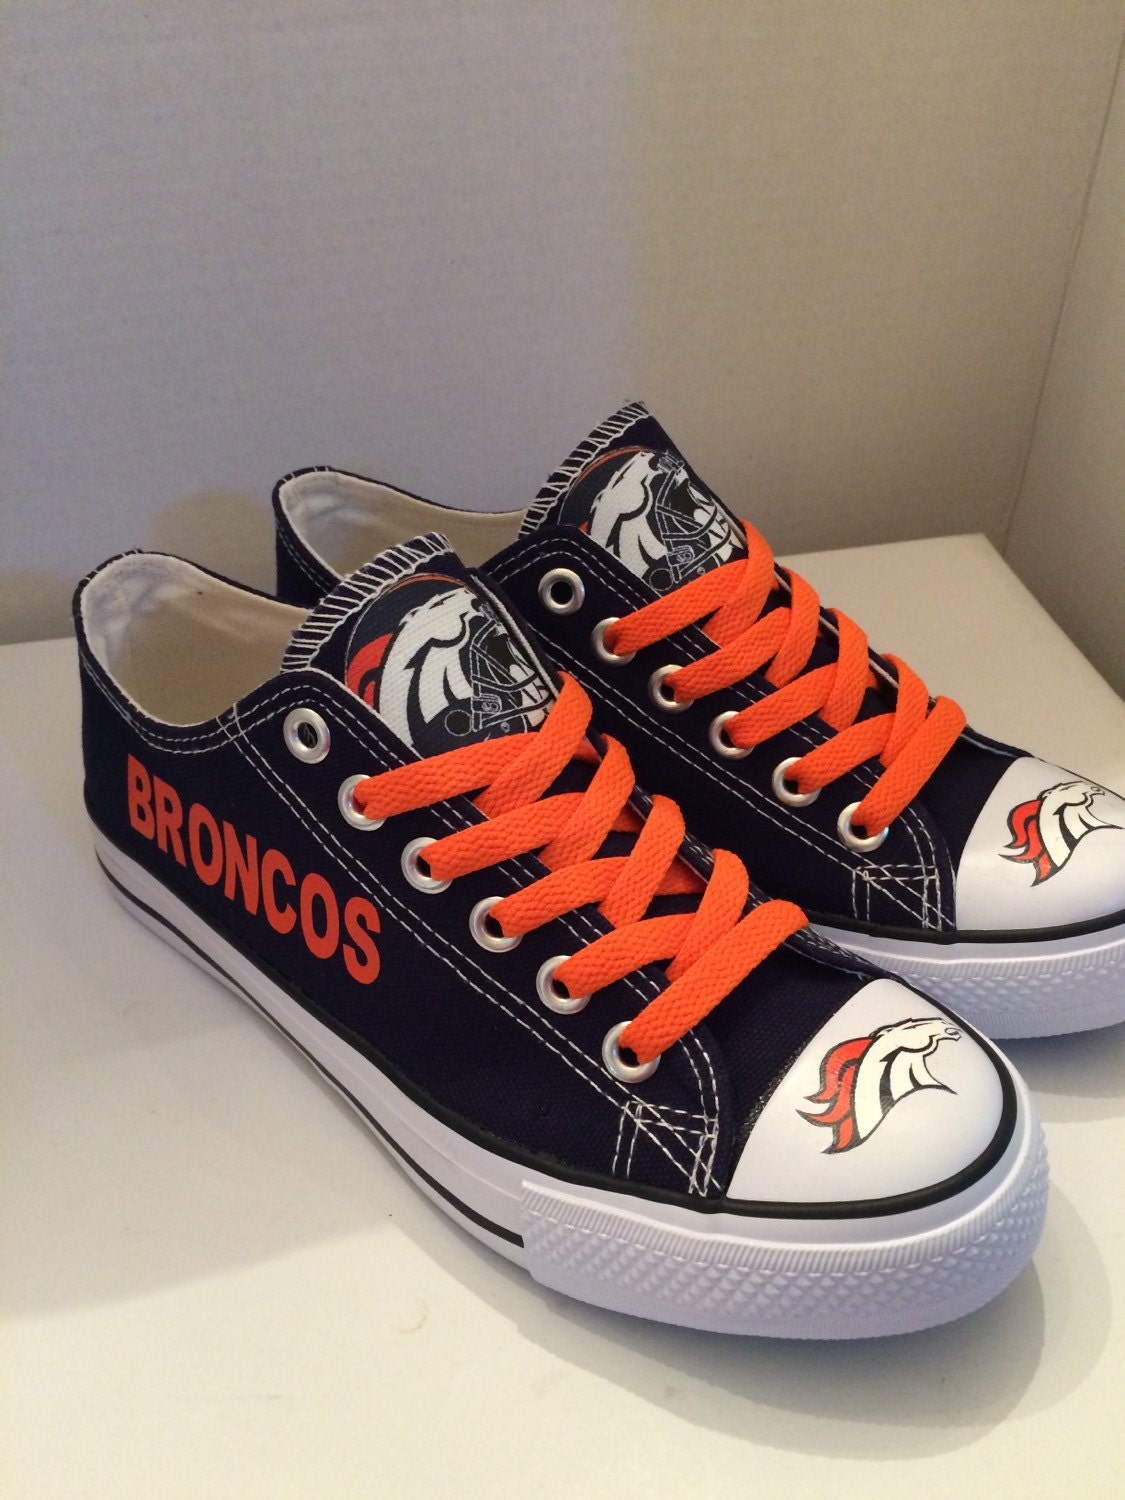 Denver Broncos Tennis Shoes